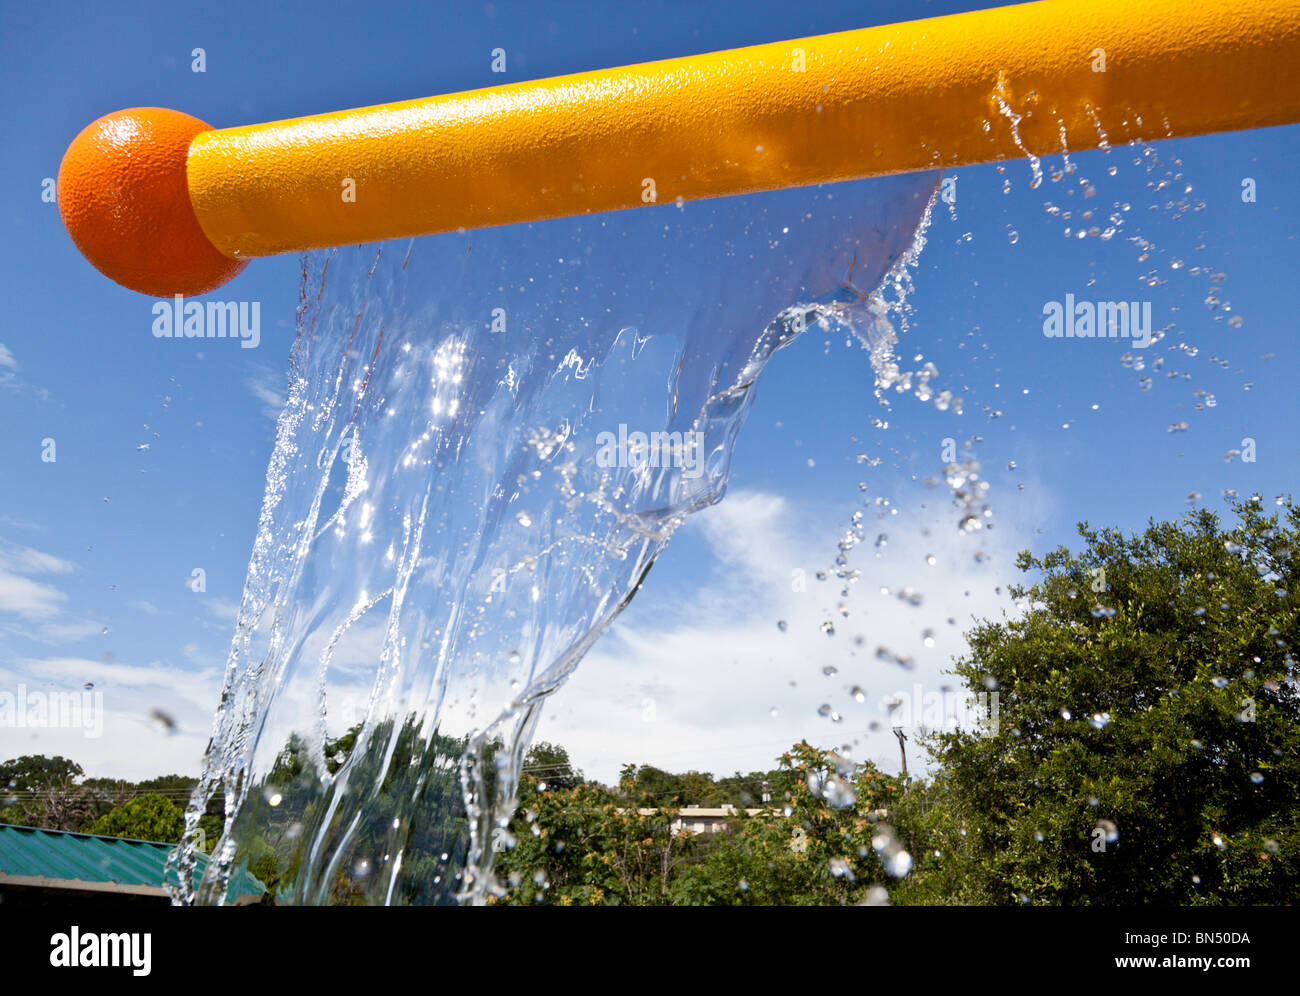 Water Feature in Pease Park in Austin, Texas - 2010 - Stock Image